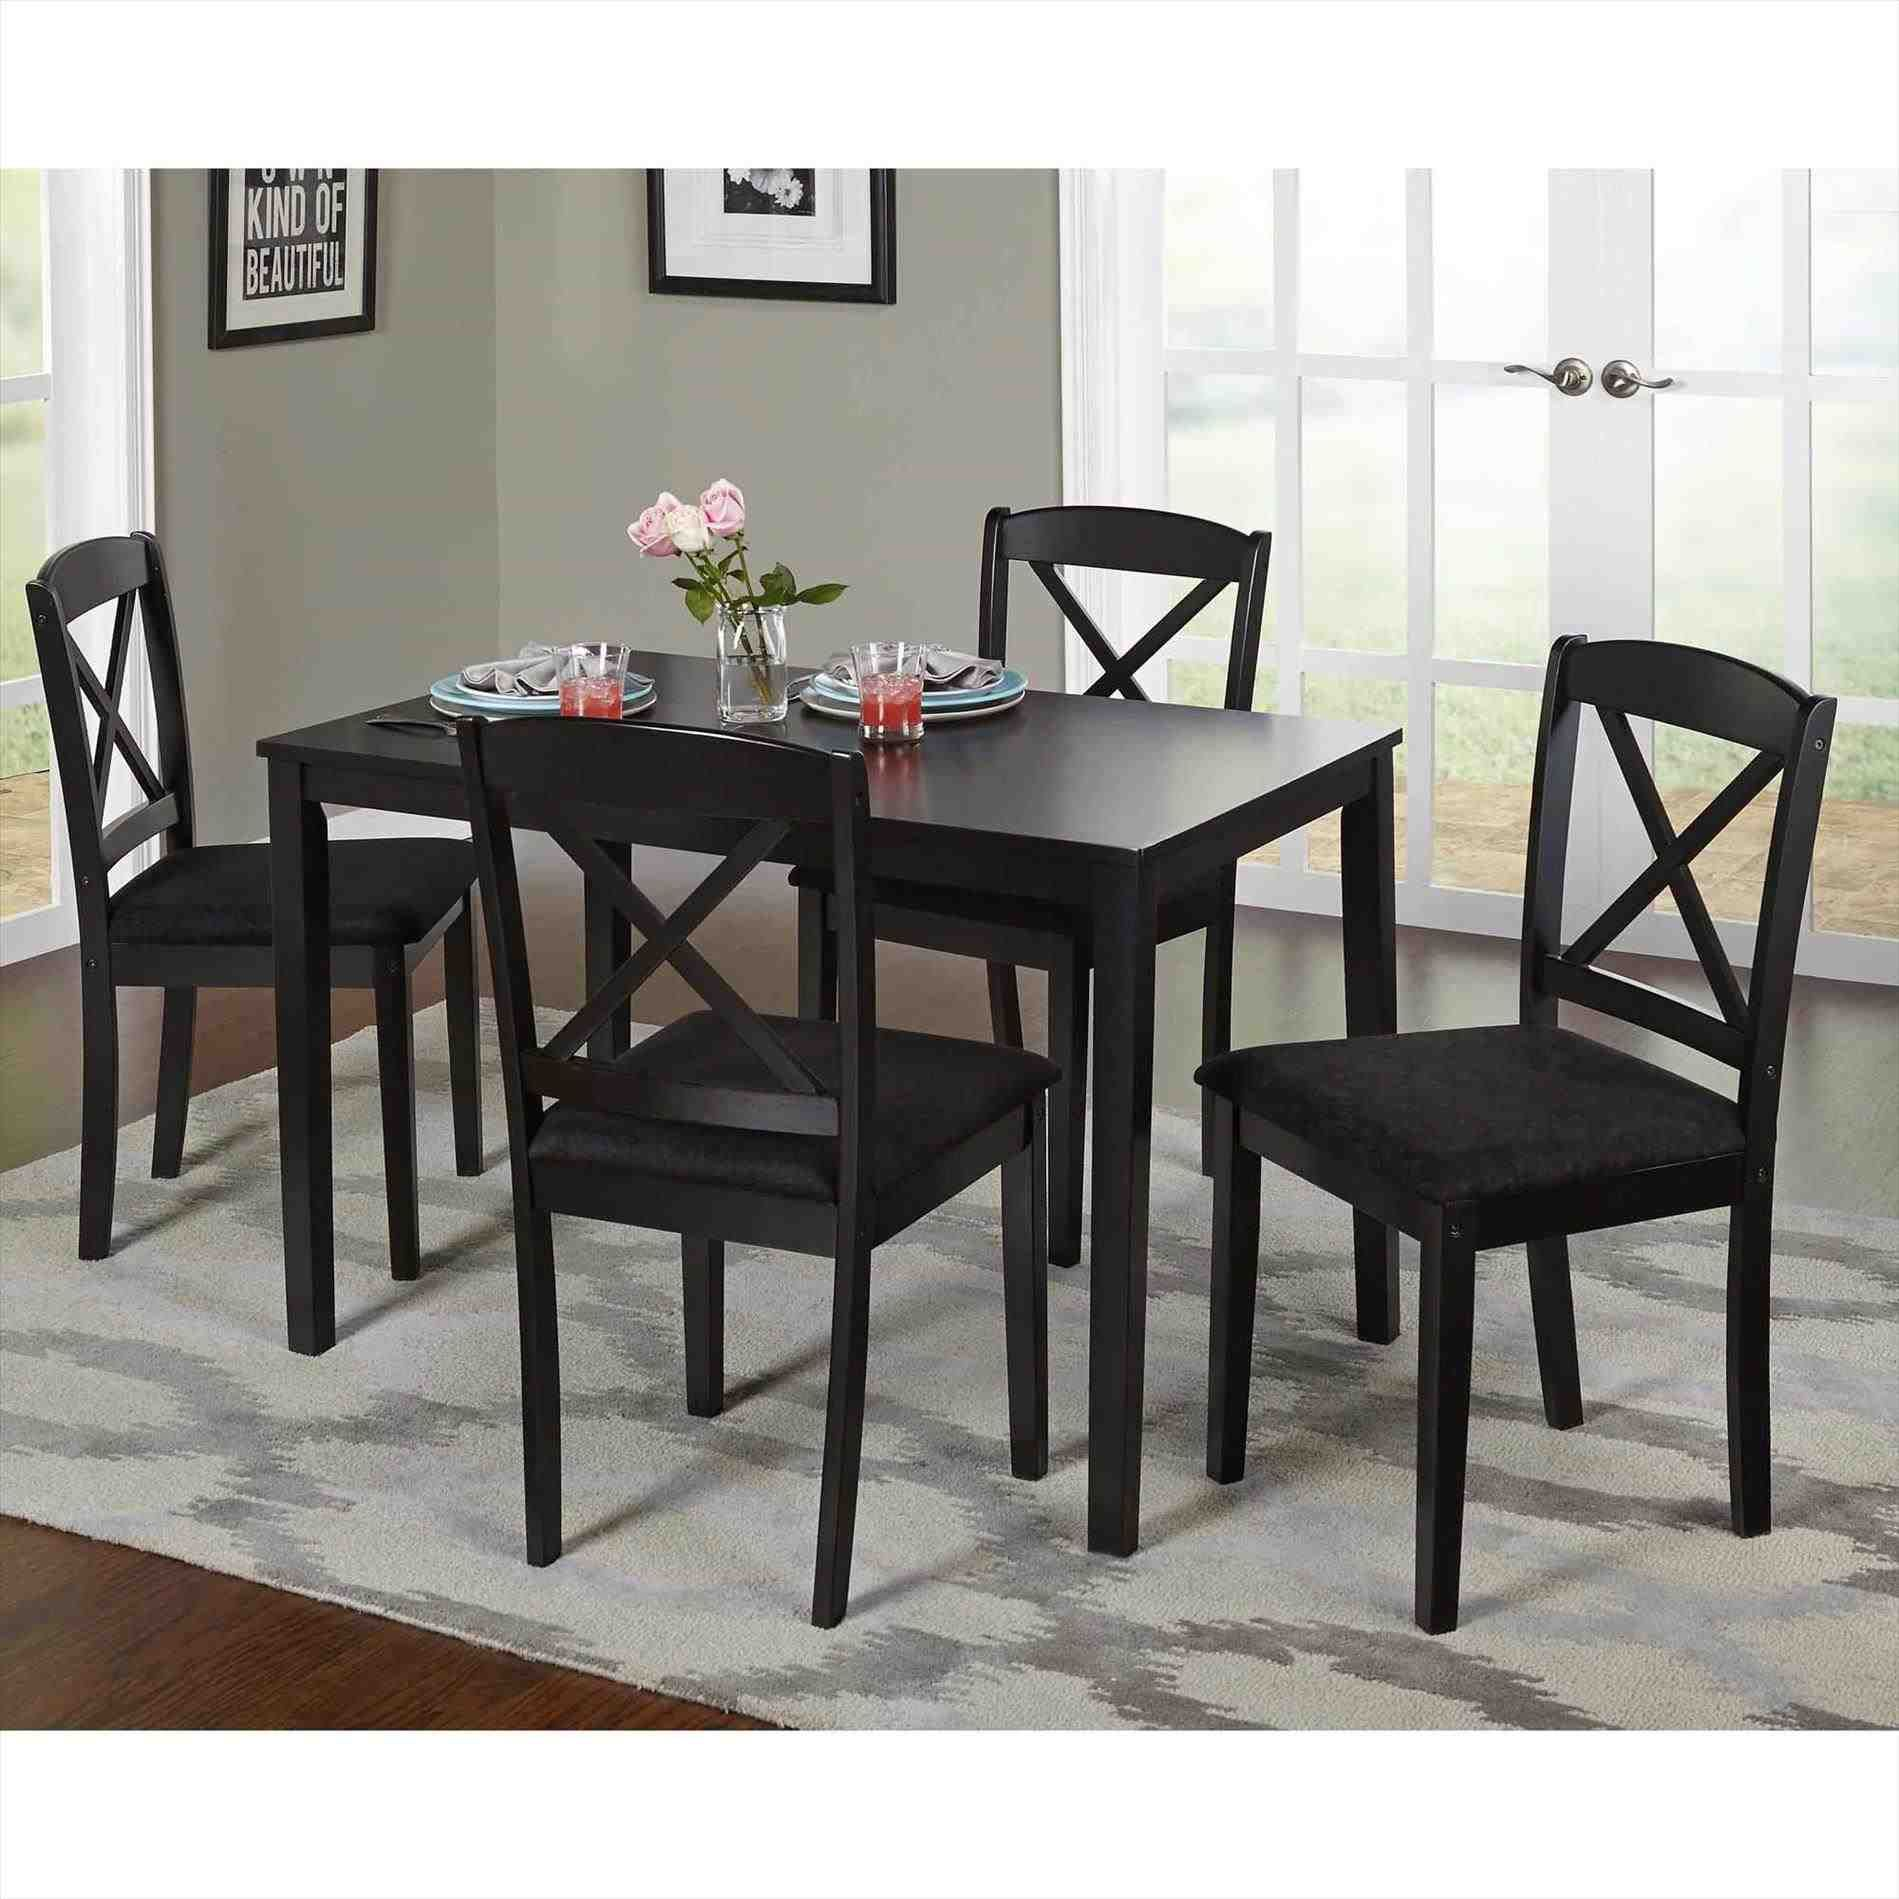 New Post cheap kitchen tables with chairs Decors Ideas